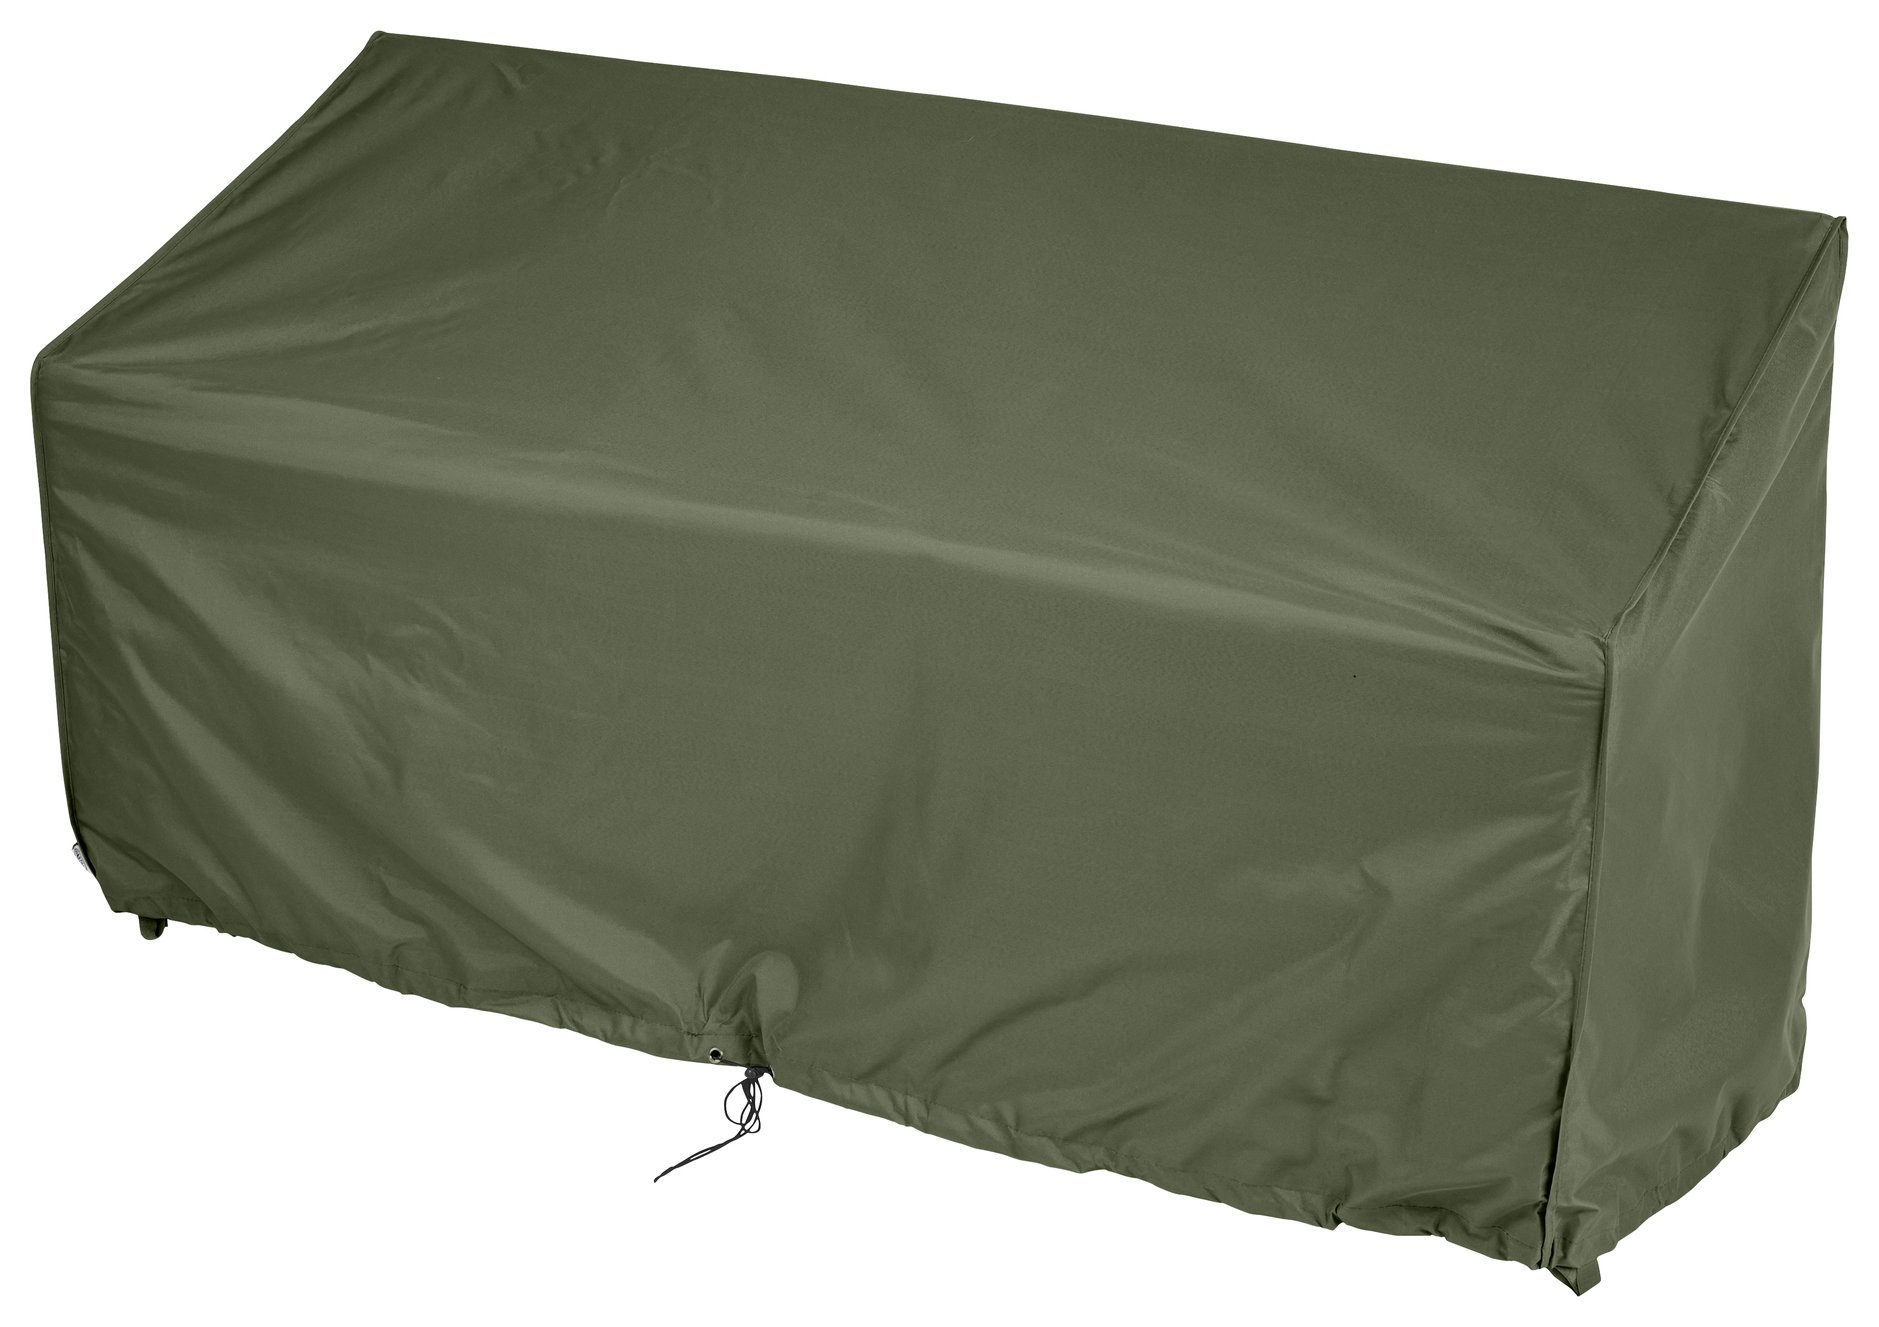 Garden furniture covers and cushions | Page 1 | Argos ...